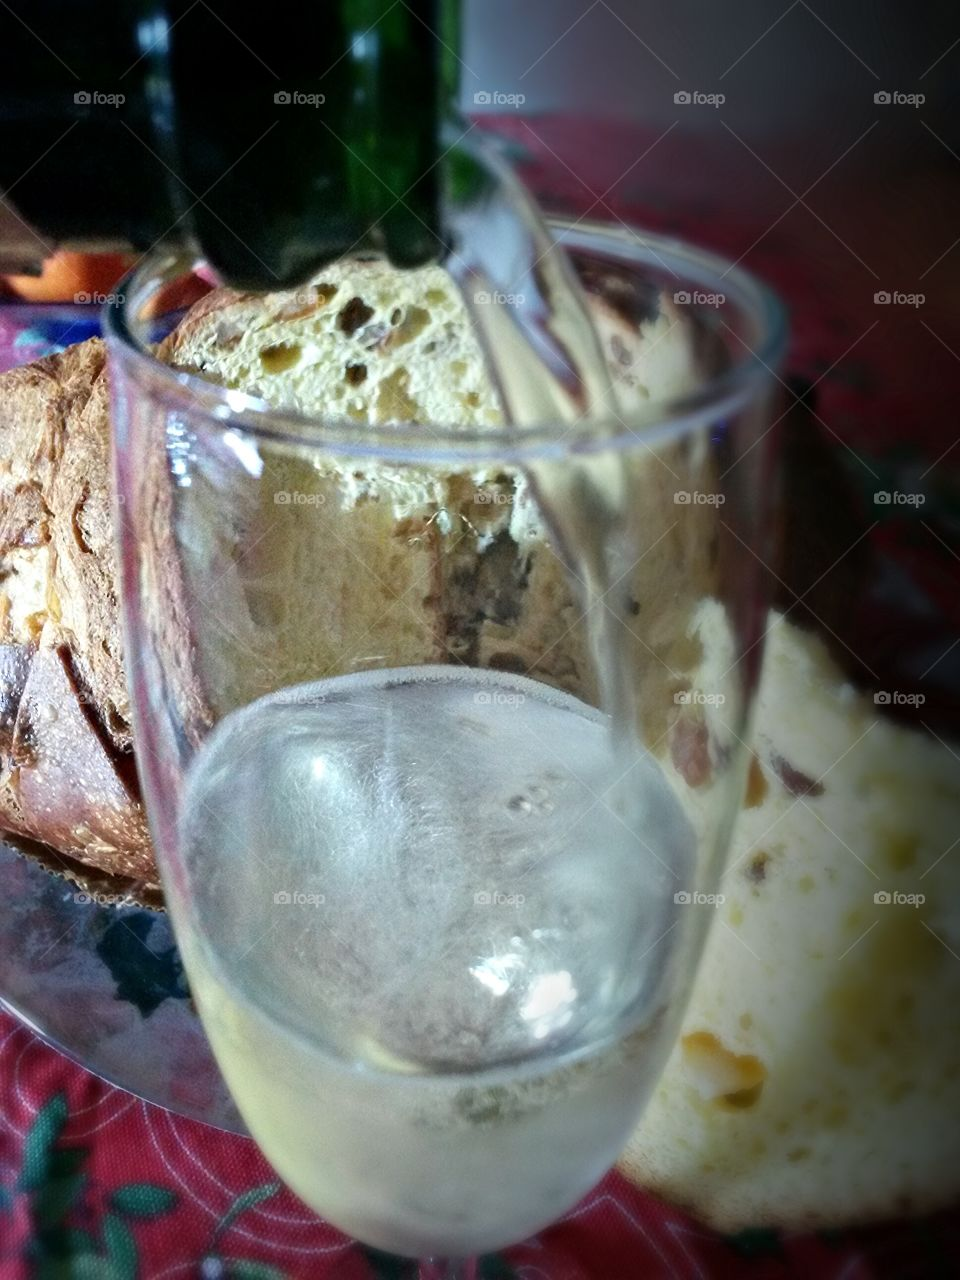 sparkling wine and italian traditional panettone for christmas celebration